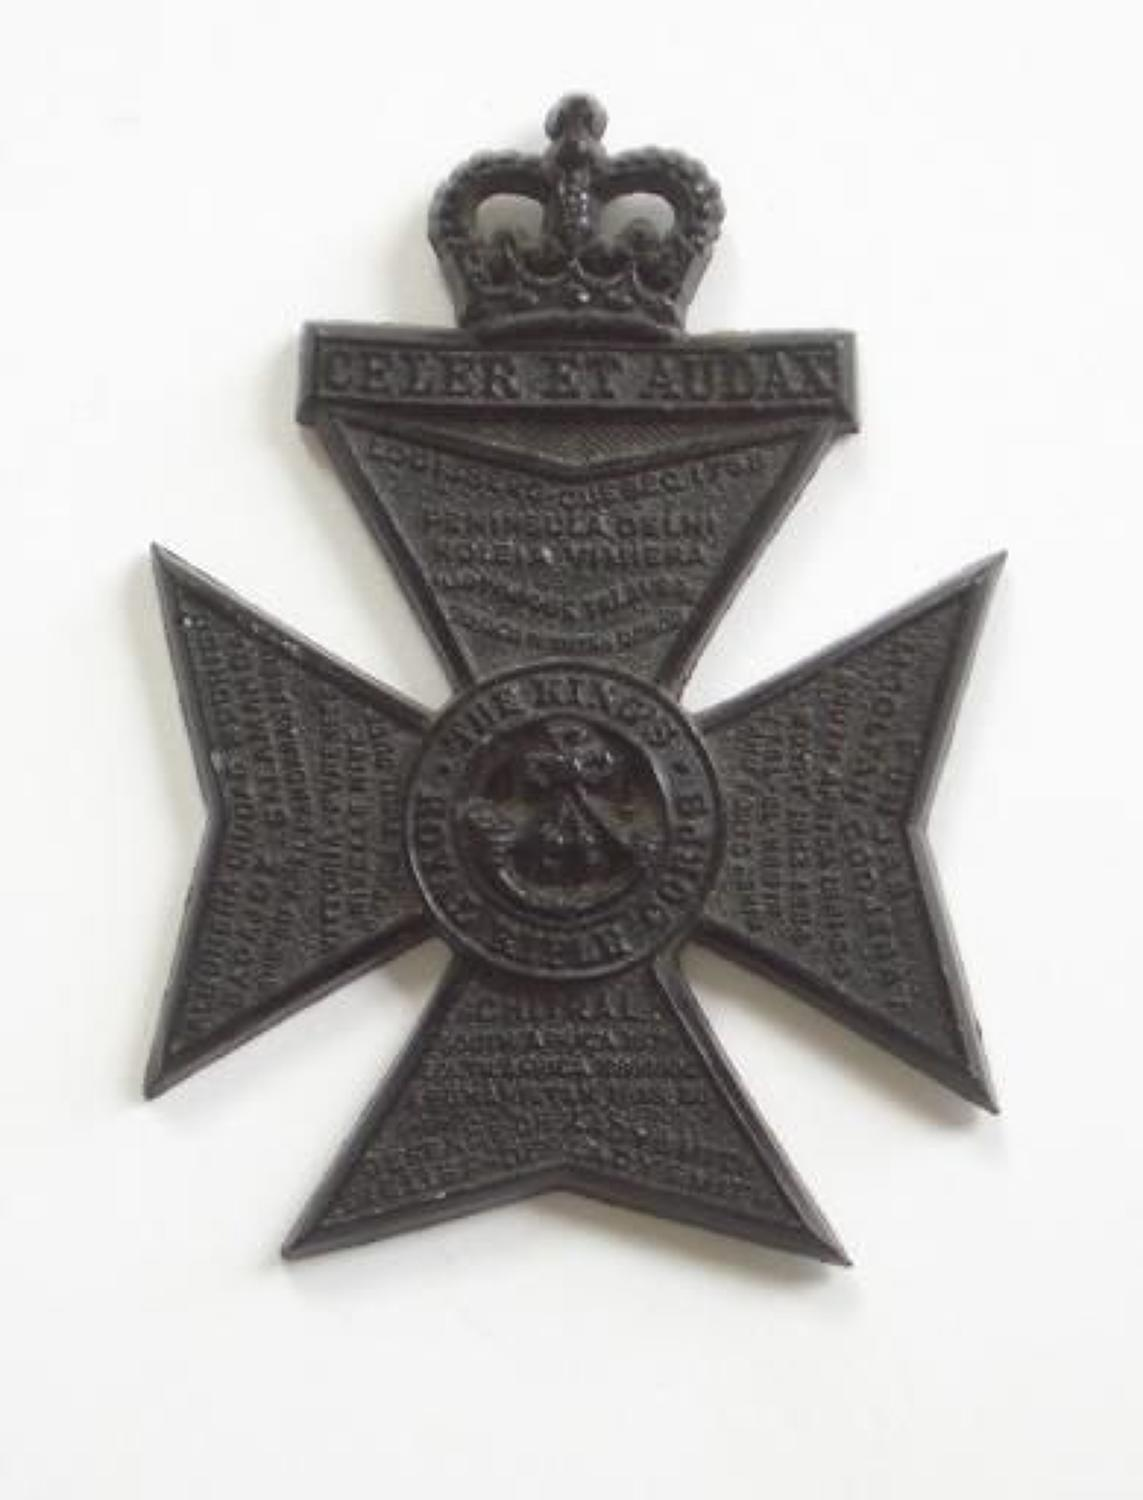 King's Royal Rifle Corps rare post 1953 plastic cap badge.